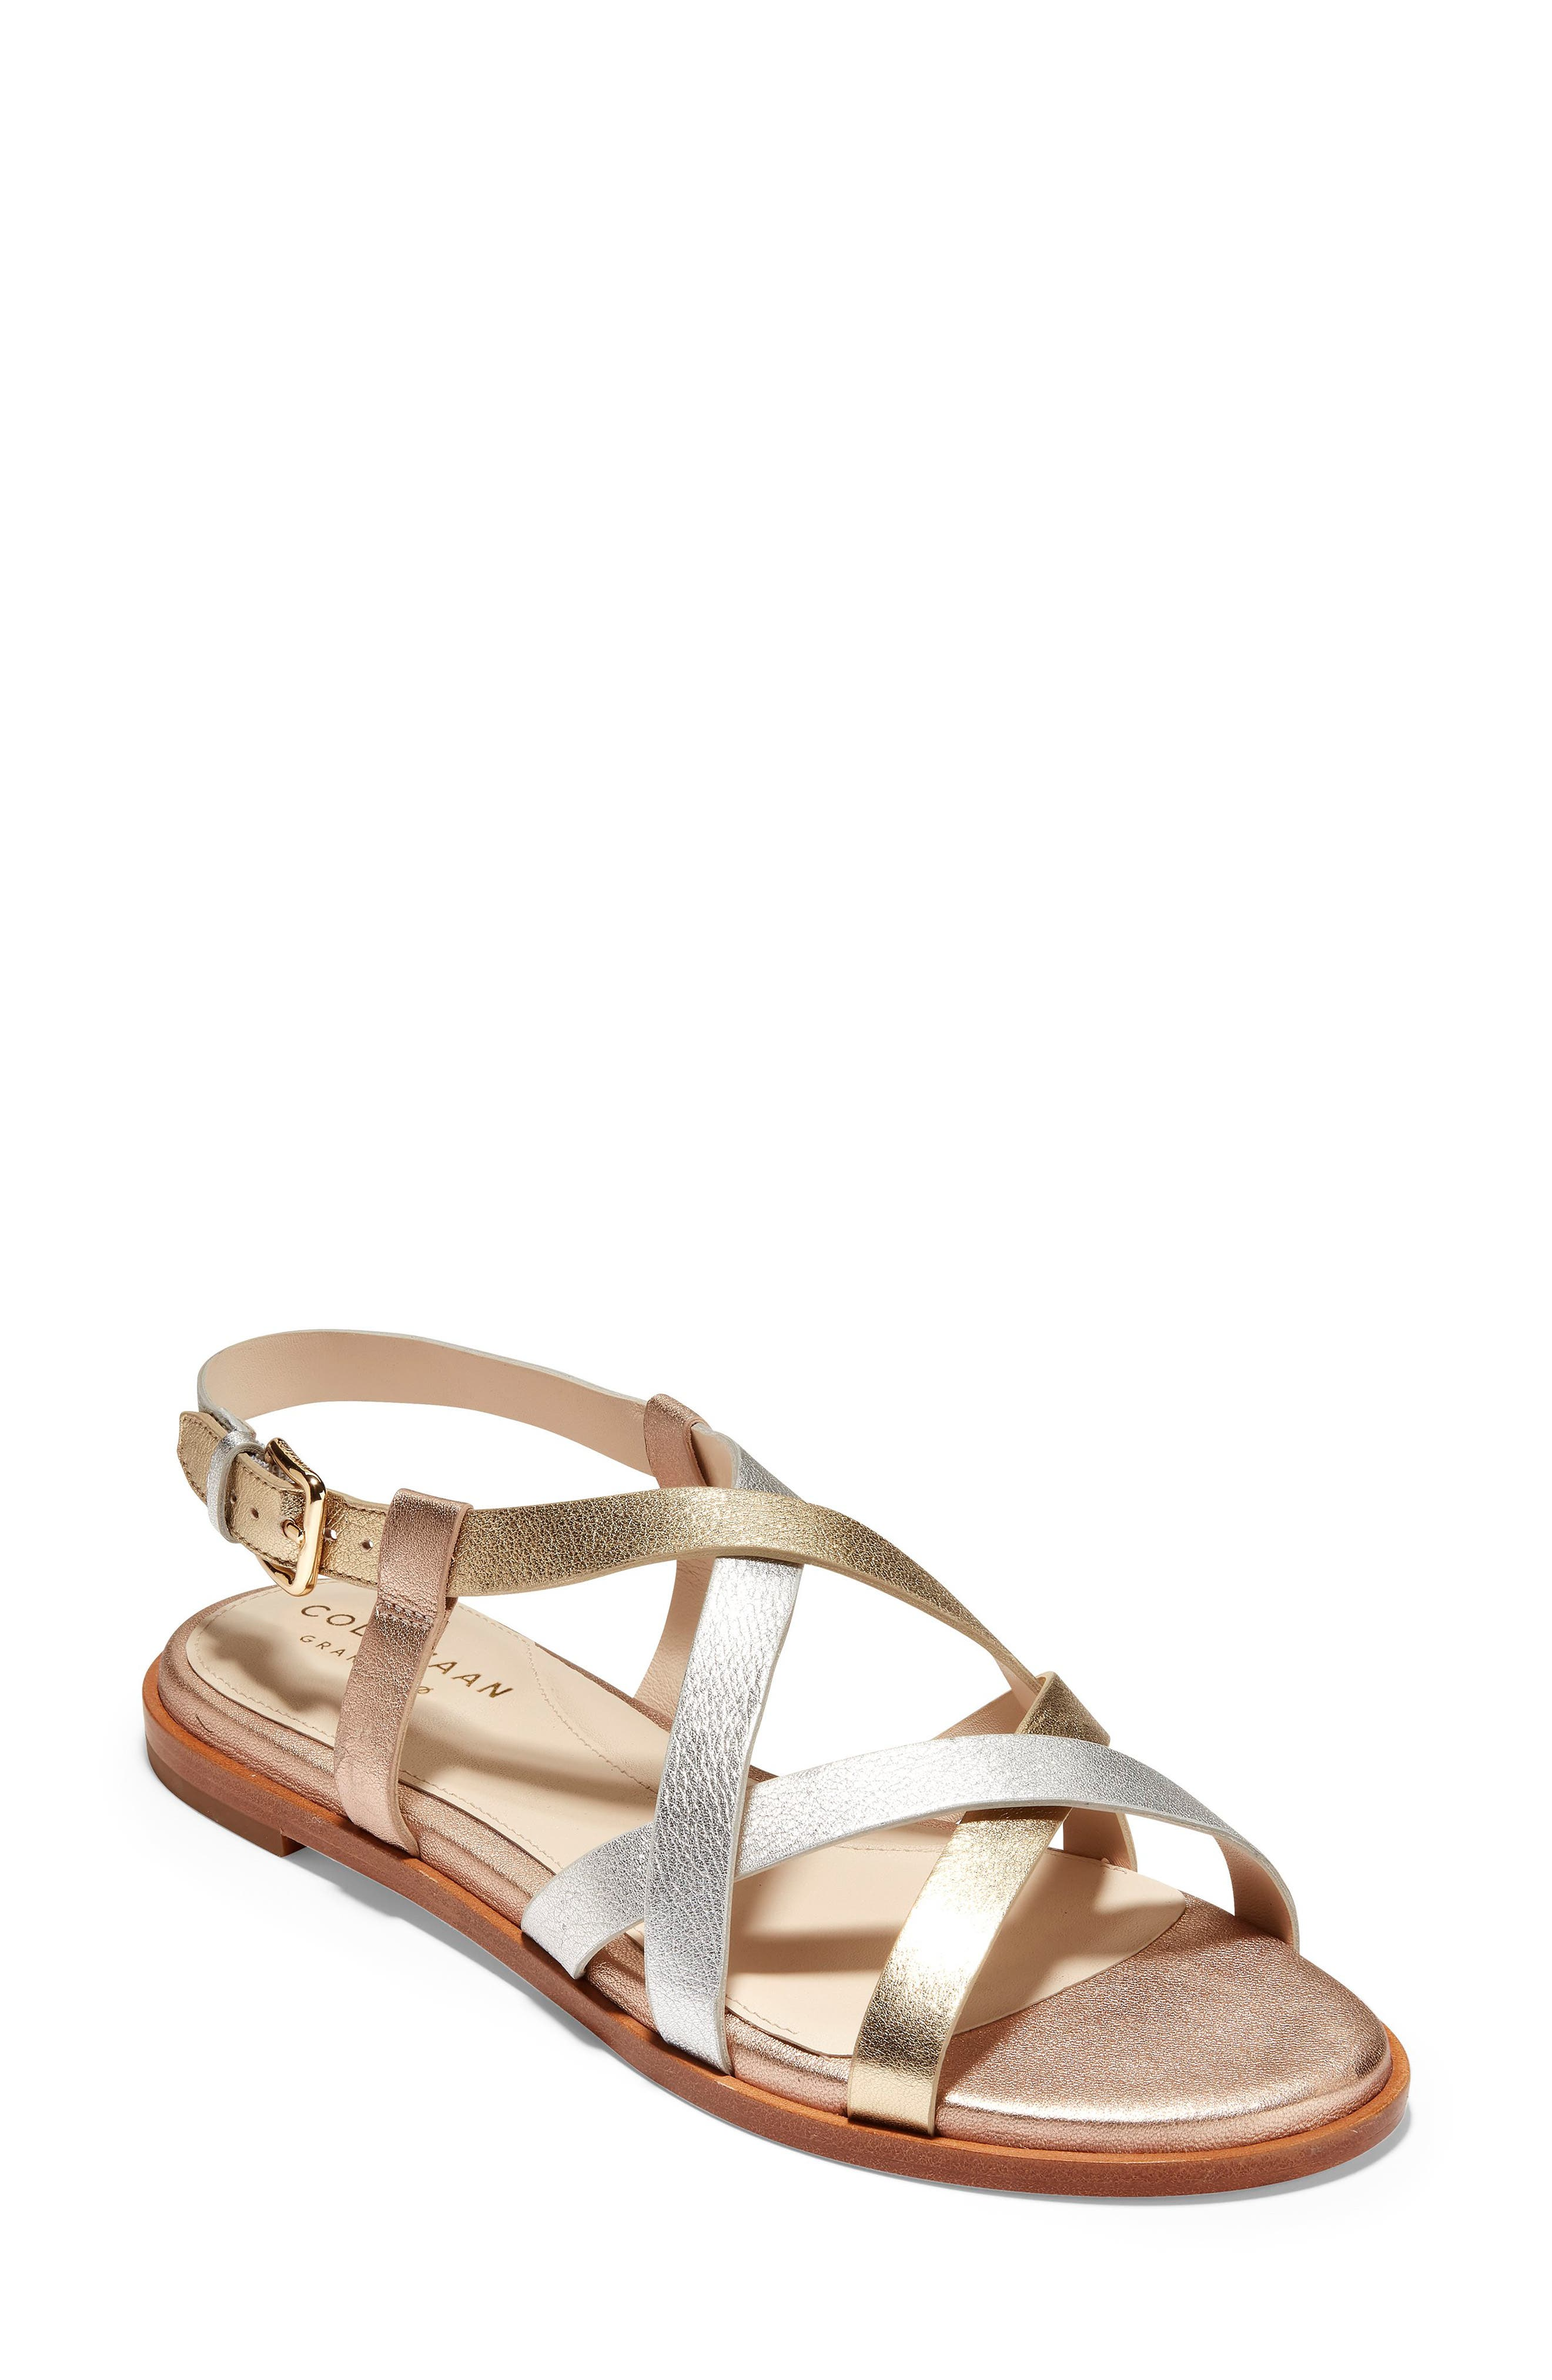 Cole Haan Analeigh Strappy Sandal, Metallic